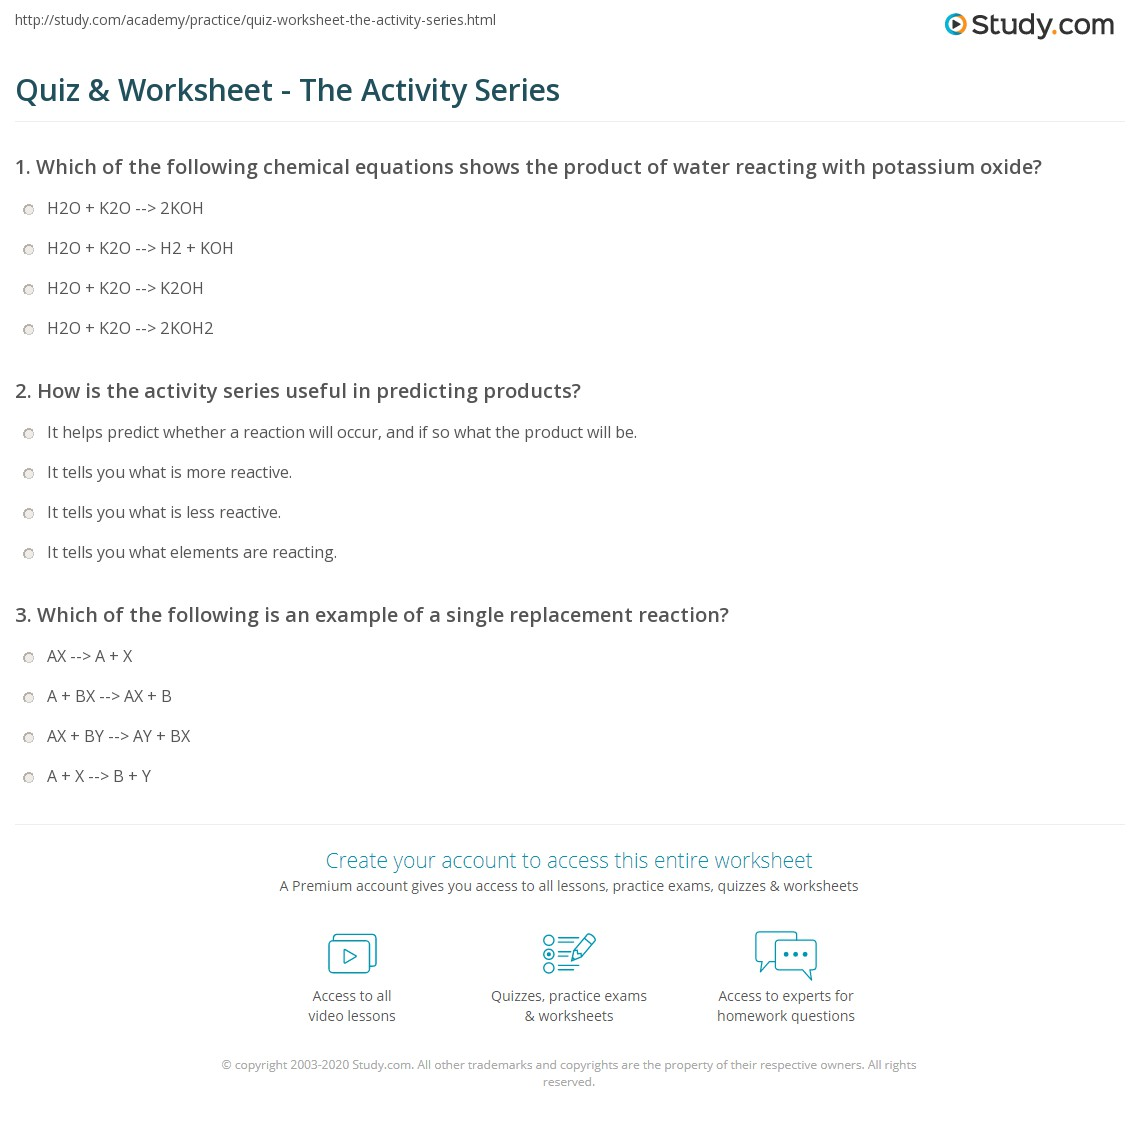 Weirdmailus  Scenic Quiz Amp Worksheet  The Activity Series  Studycom With Glamorous Print The Activity Series Predicting Products Of Single Displacement Reactions Worksheet With Easy On The Eye Missing Number Worksheets Nd Grade Also Pronunciation Of Ed Endings Worksheets In Addition Nouns And Verbs Worksheets And Nouns Pdf Worksheets As Well As Cursive Worksheets Printable Additionally Plant Hormones Worksheet From Studycom With Weirdmailus  Glamorous Quiz Amp Worksheet  The Activity Series  Studycom With Easy On The Eye Print The Activity Series Predicting Products Of Single Displacement Reactions Worksheet And Scenic Missing Number Worksheets Nd Grade Also Pronunciation Of Ed Endings Worksheets In Addition Nouns And Verbs Worksheets From Studycom